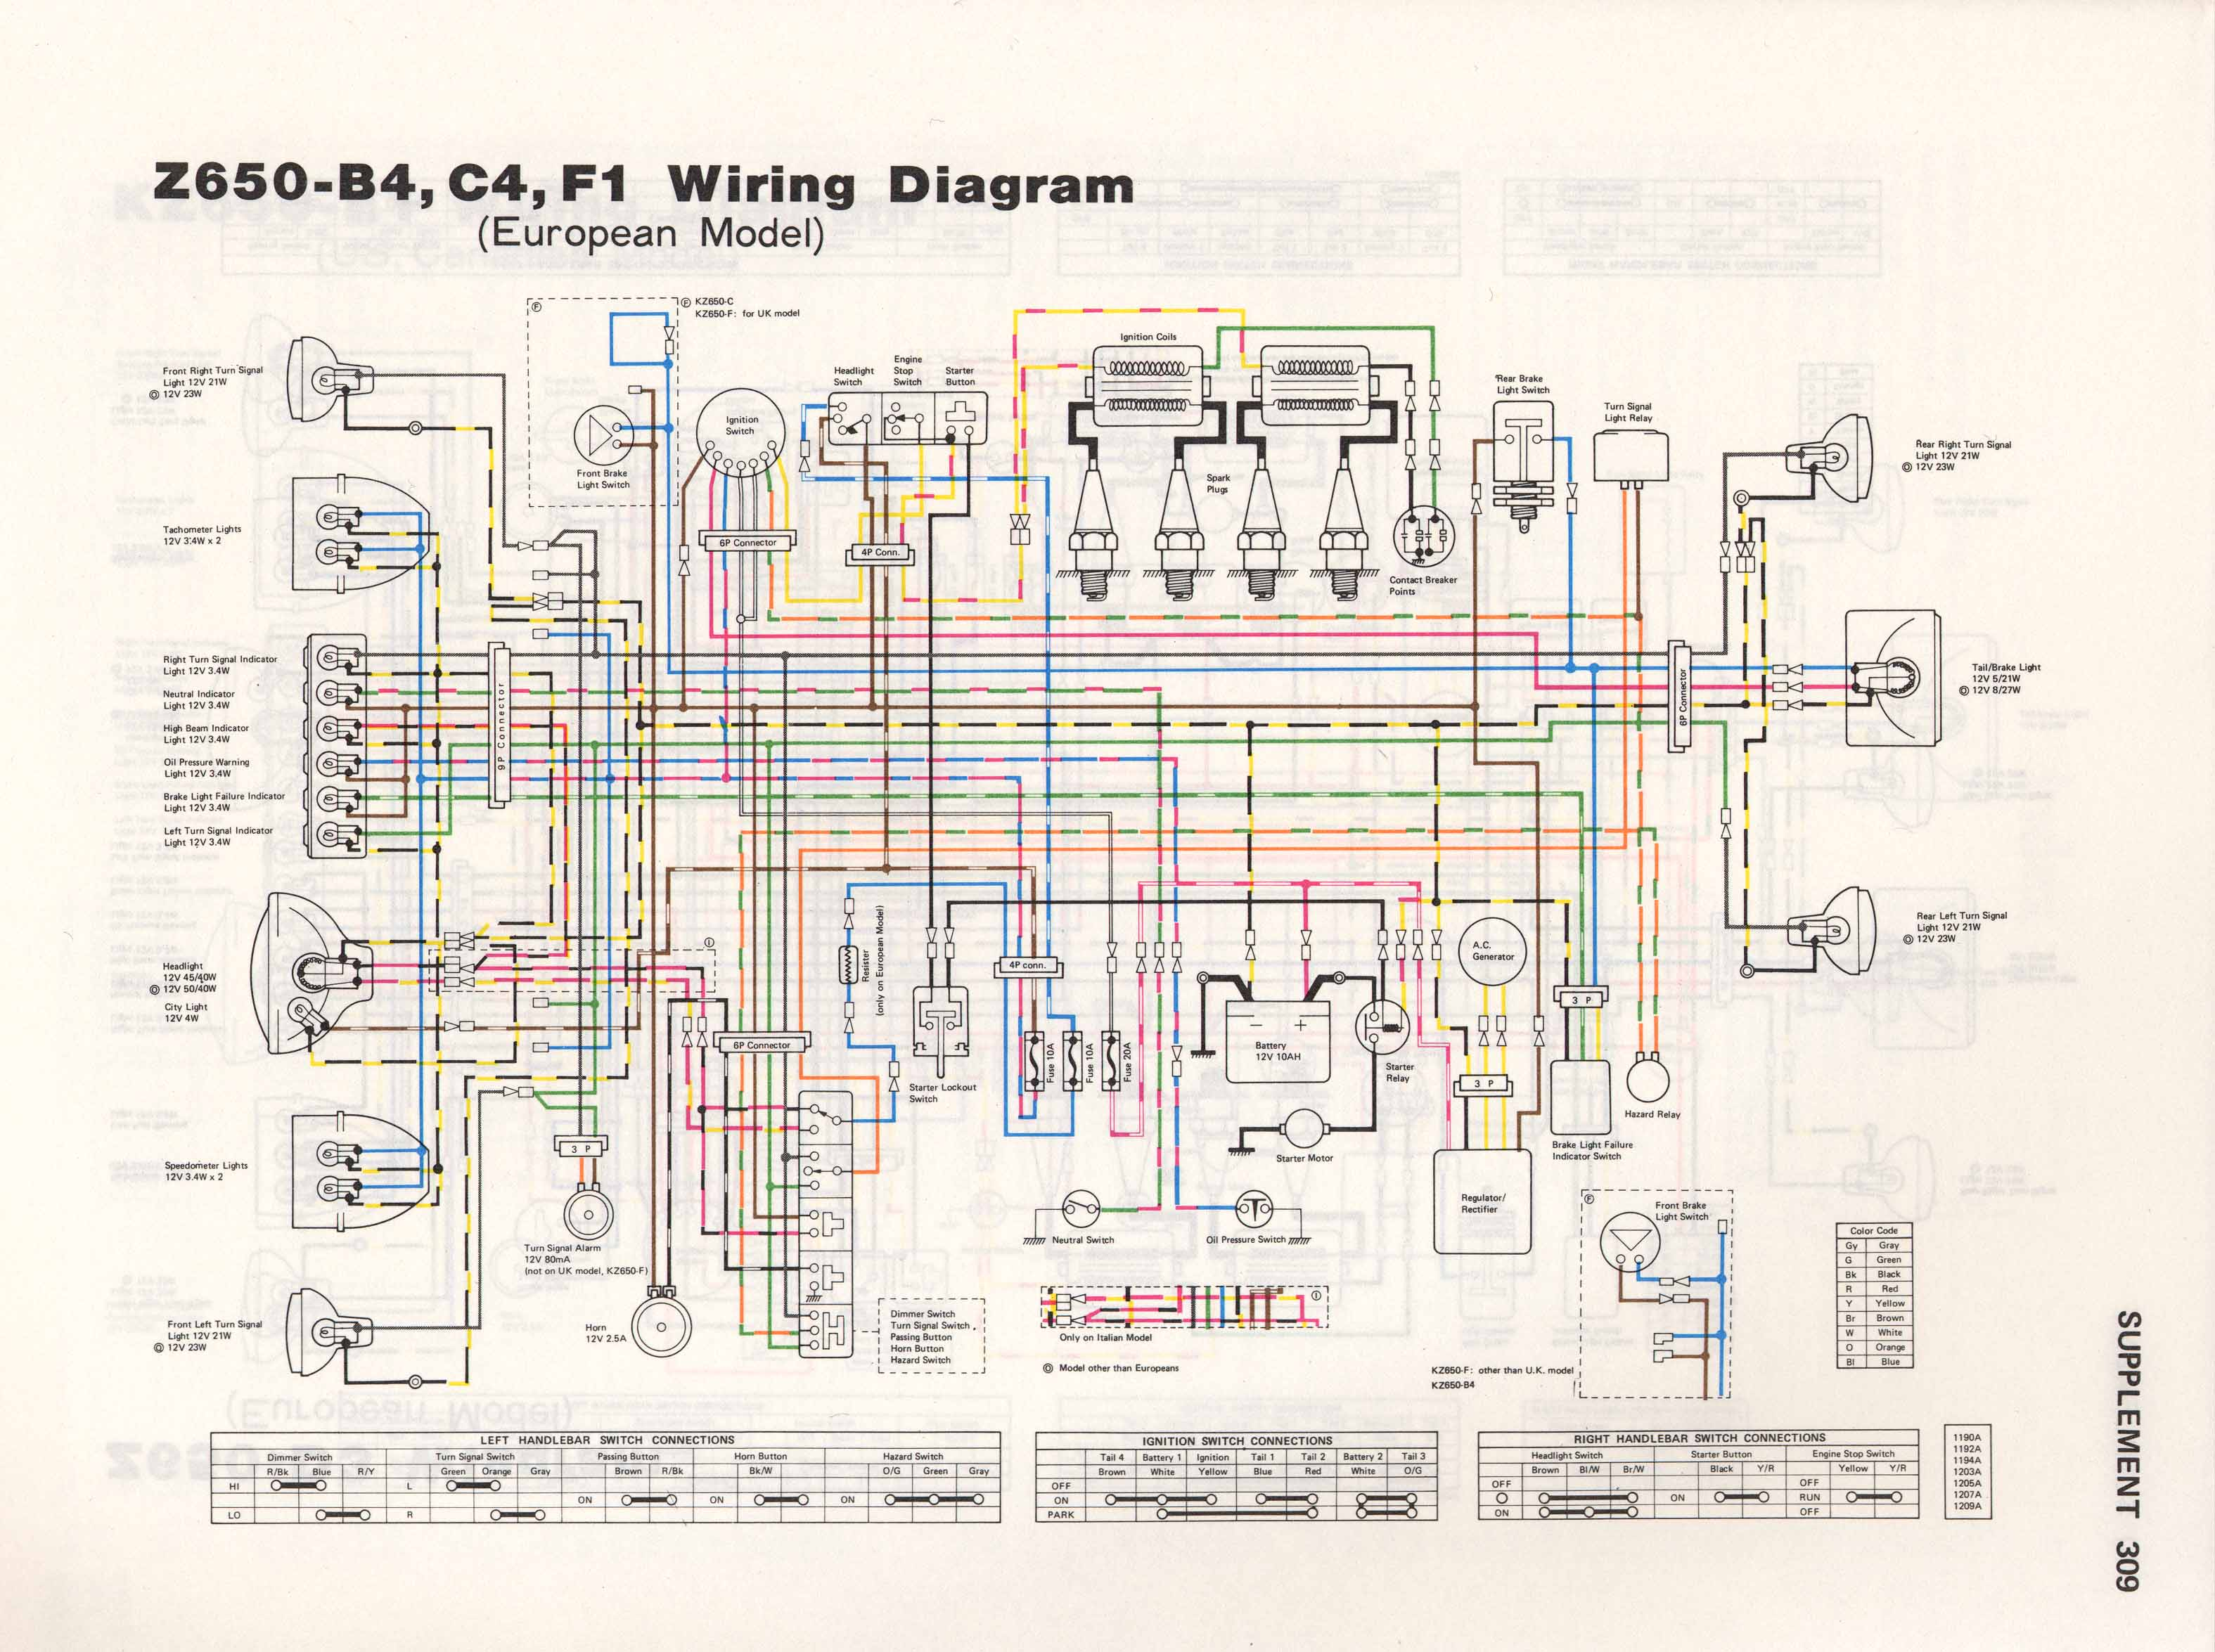 Kz650info Wiring Diagram European Plug Z650 B4c4f1 Model